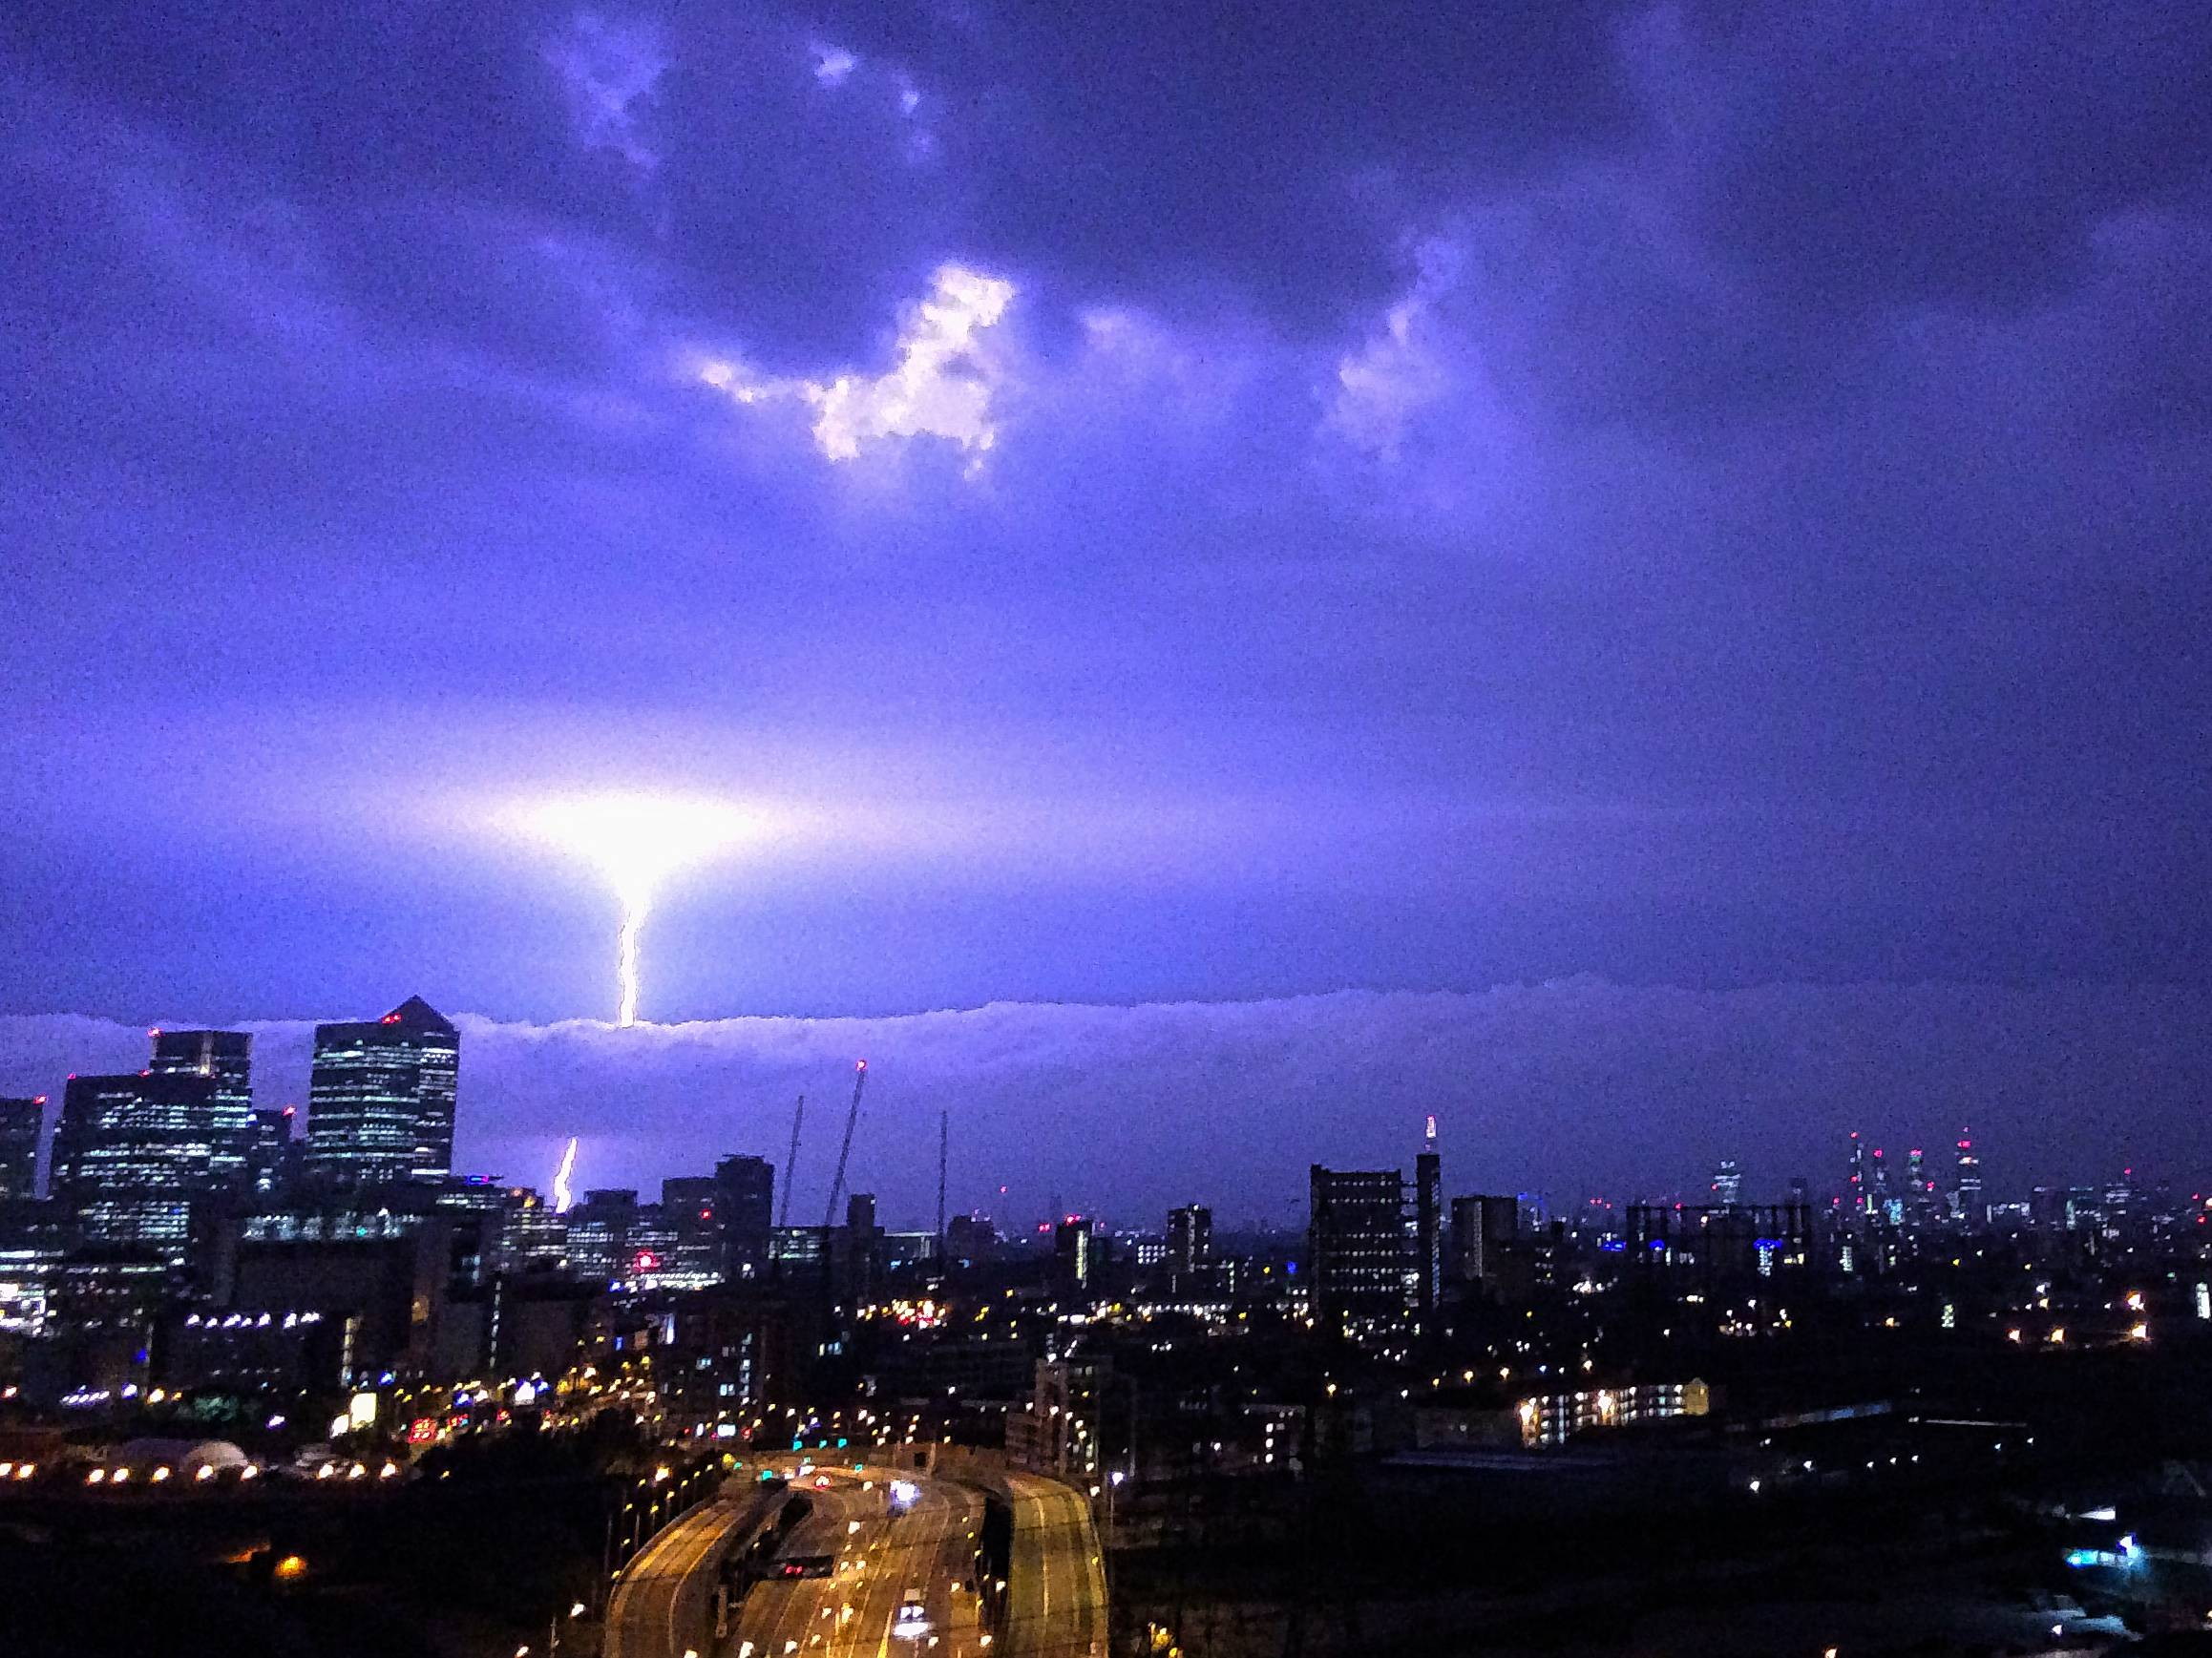 lightning, terrifying lightning photo London, lightning photo, Another view of this fantastic and terrifying lightning photo over London. Photo: Reddit, Lightning Photo, Terrifying Lightning Photo Over London, This terrifying lightning photo was caught over London on July 18 2014 during a thunderstorm! Fantastic picture!